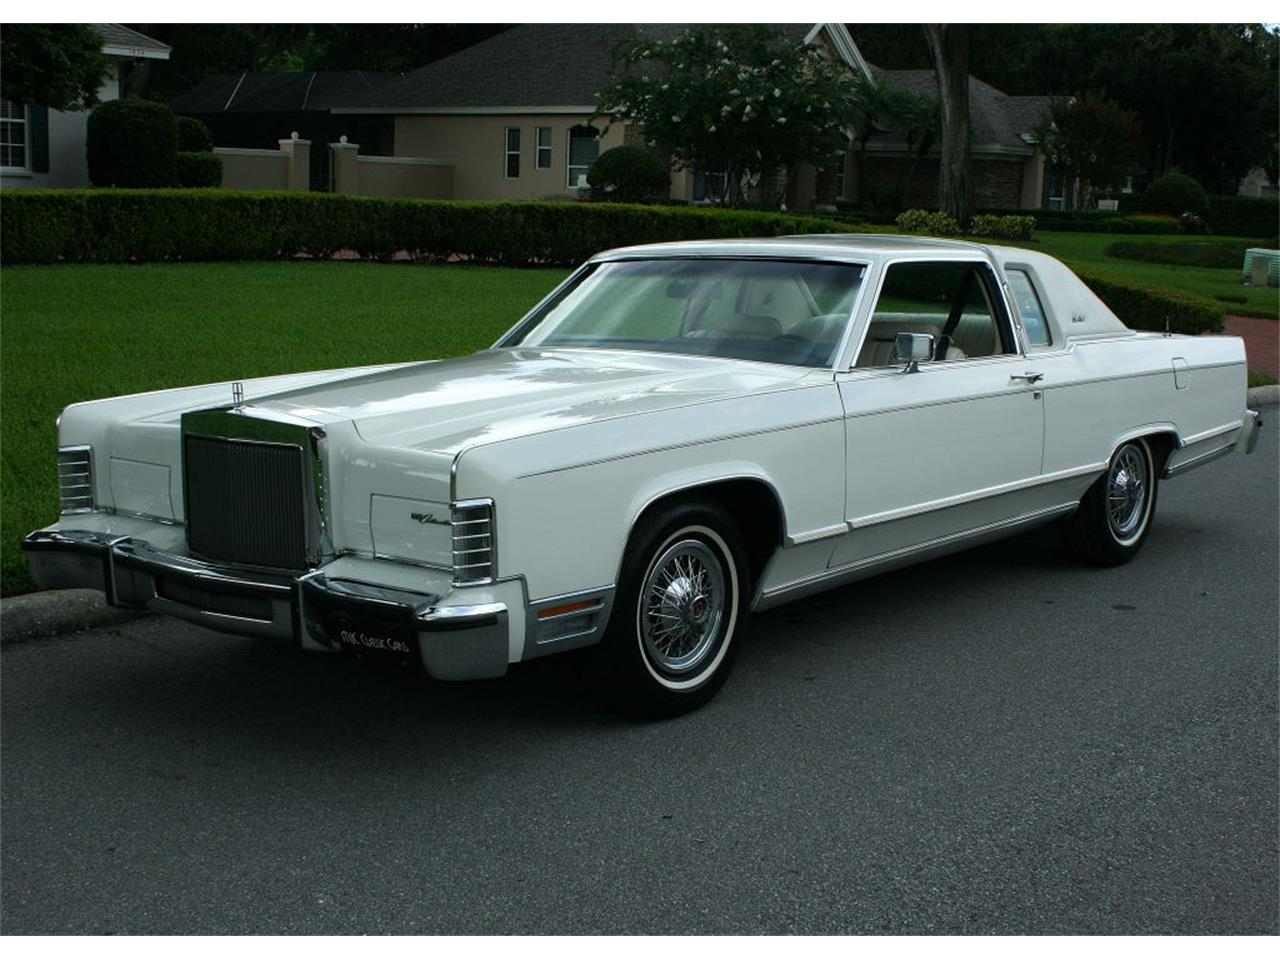 Large Picture of 1979 Lincoln Town Car located in lakeland Florida - $17,500.00 - LBZD